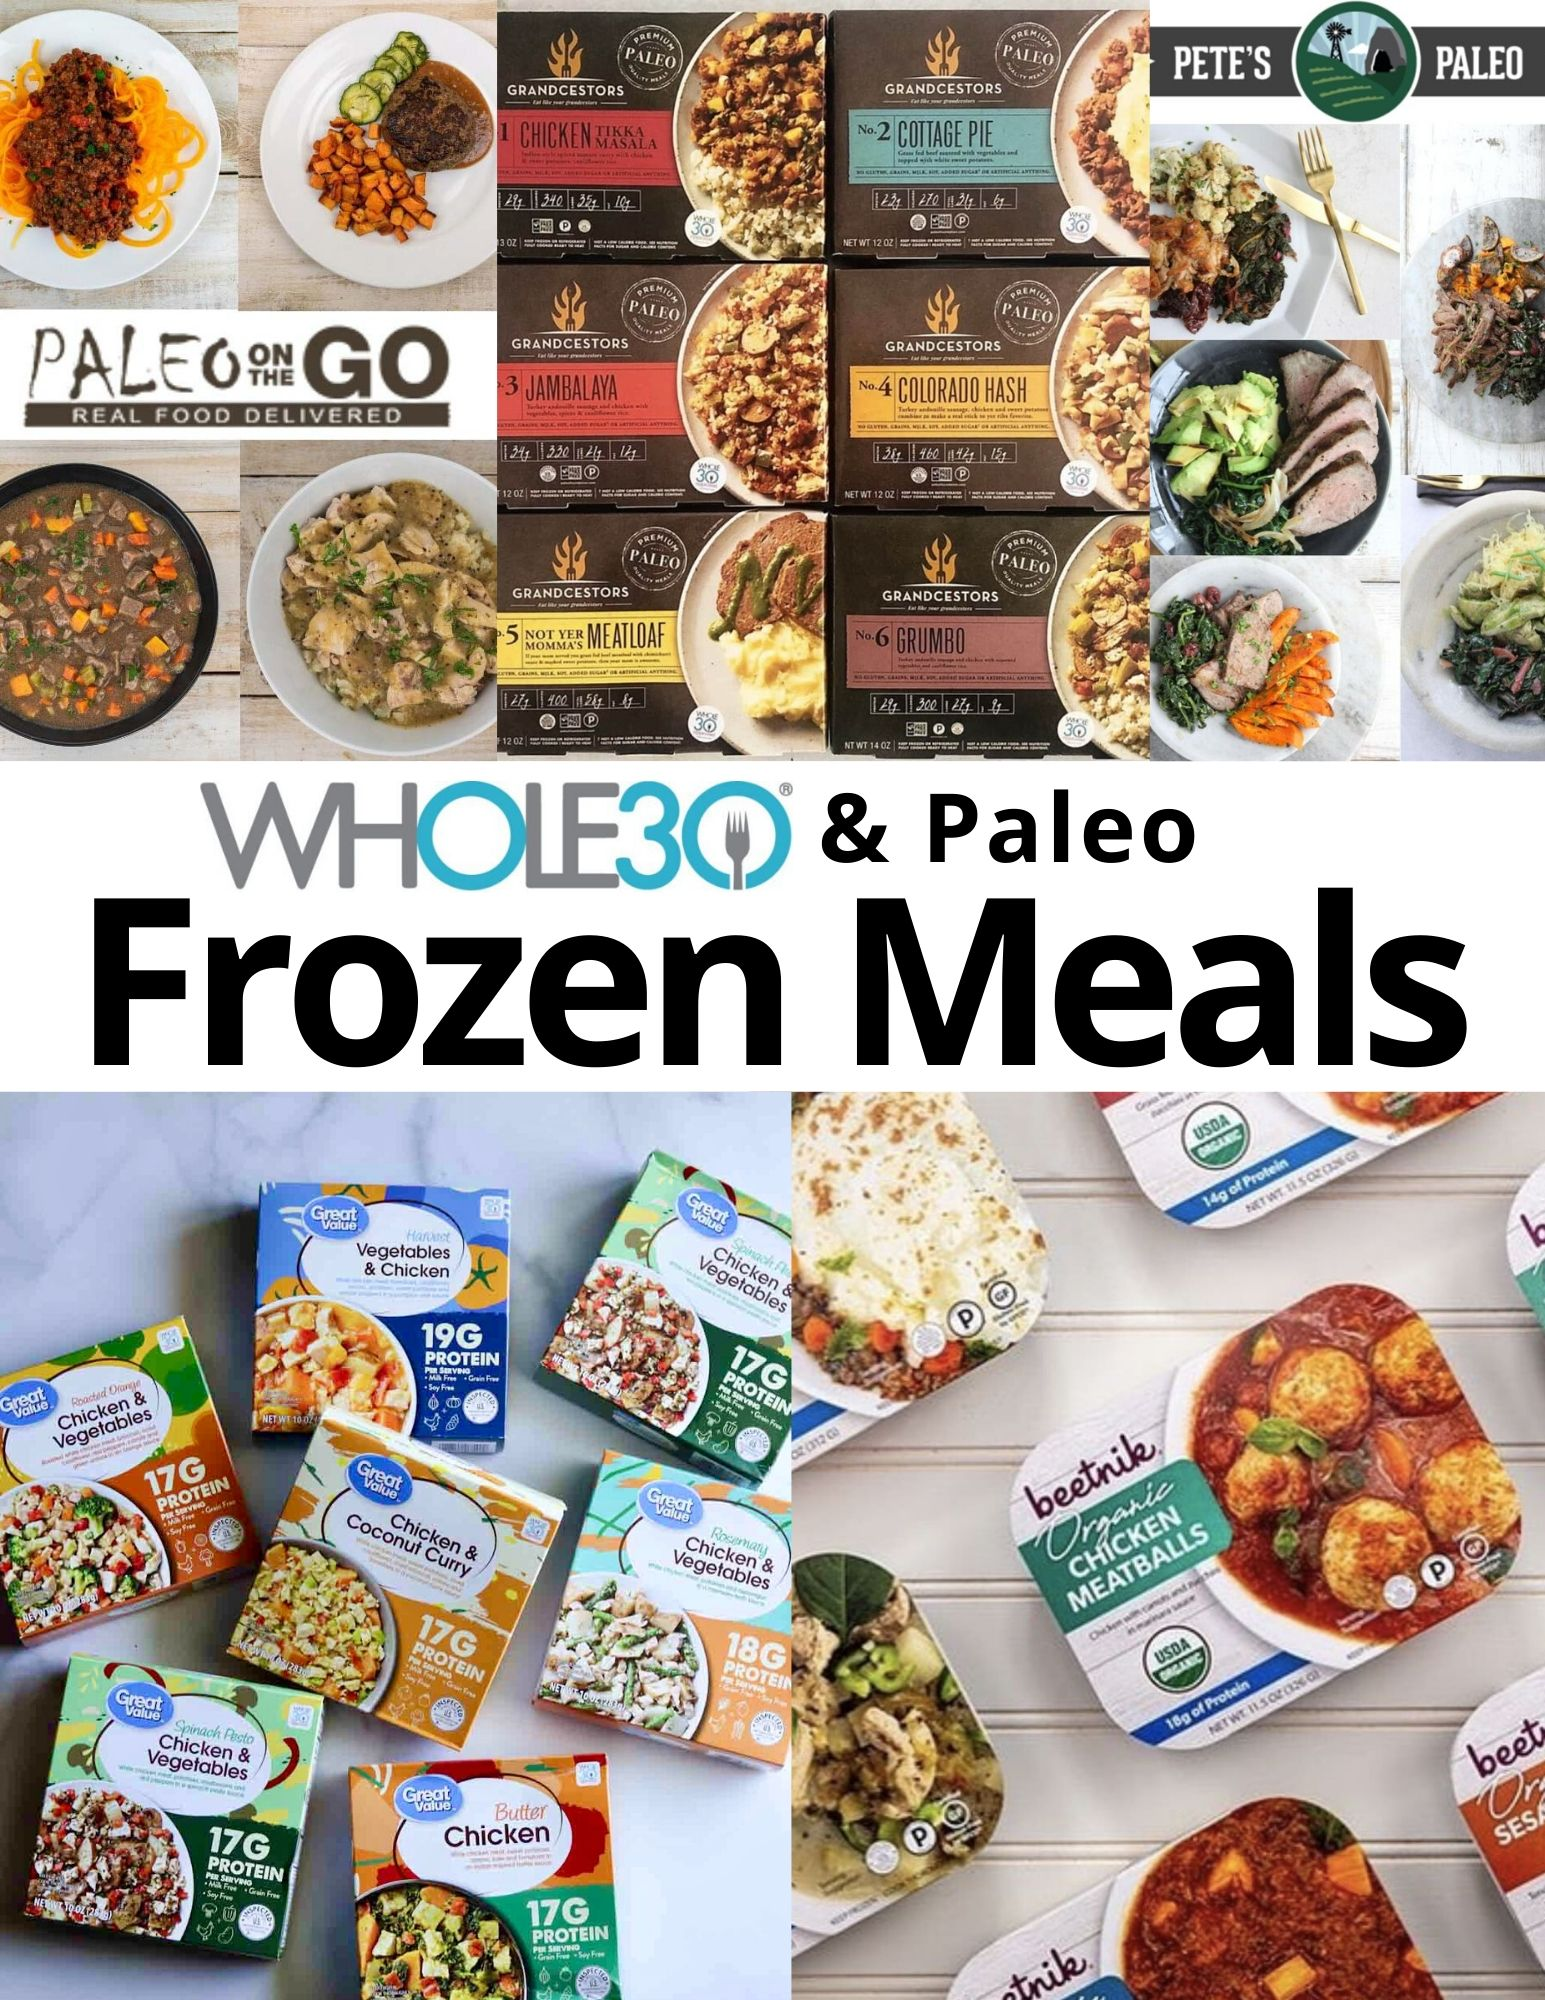 Low Carb Tv Dinners Walmart : dinners, walmart, Whole30, Paleo, Frozen, Meals, Prices